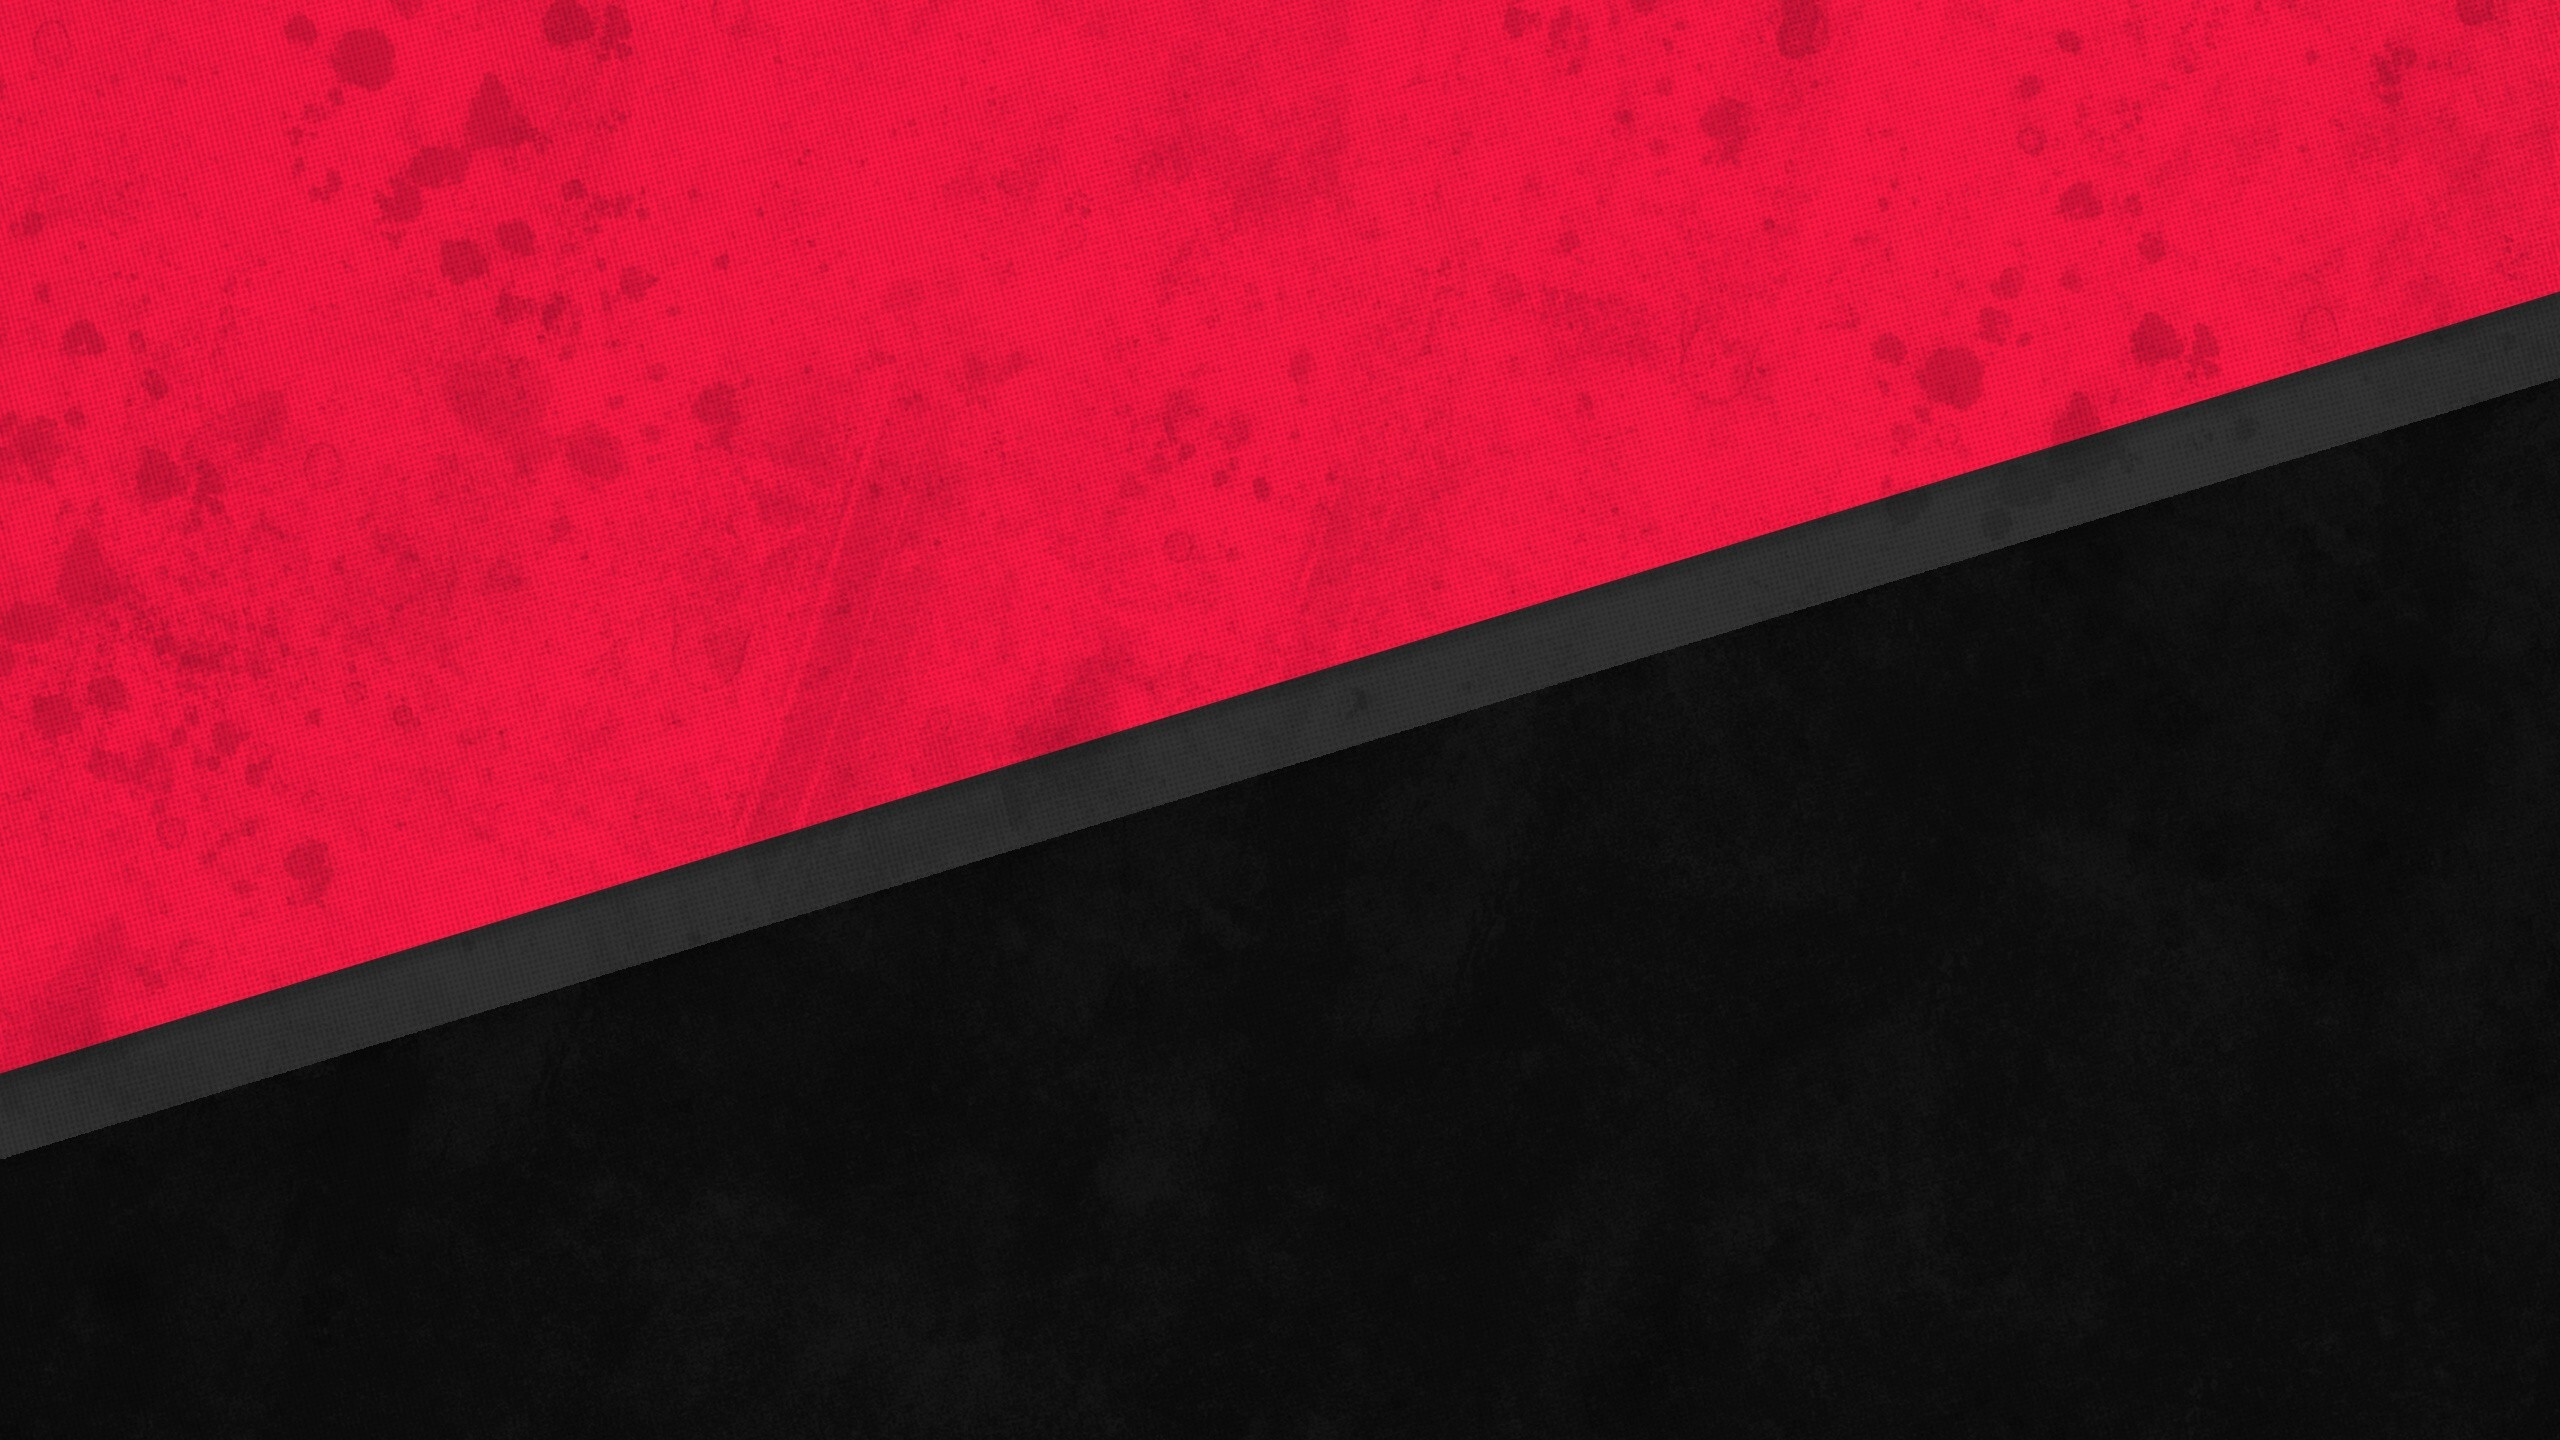 2560x1440 Red Black Texture 1440p Resolution Hd 4k Wallpapers